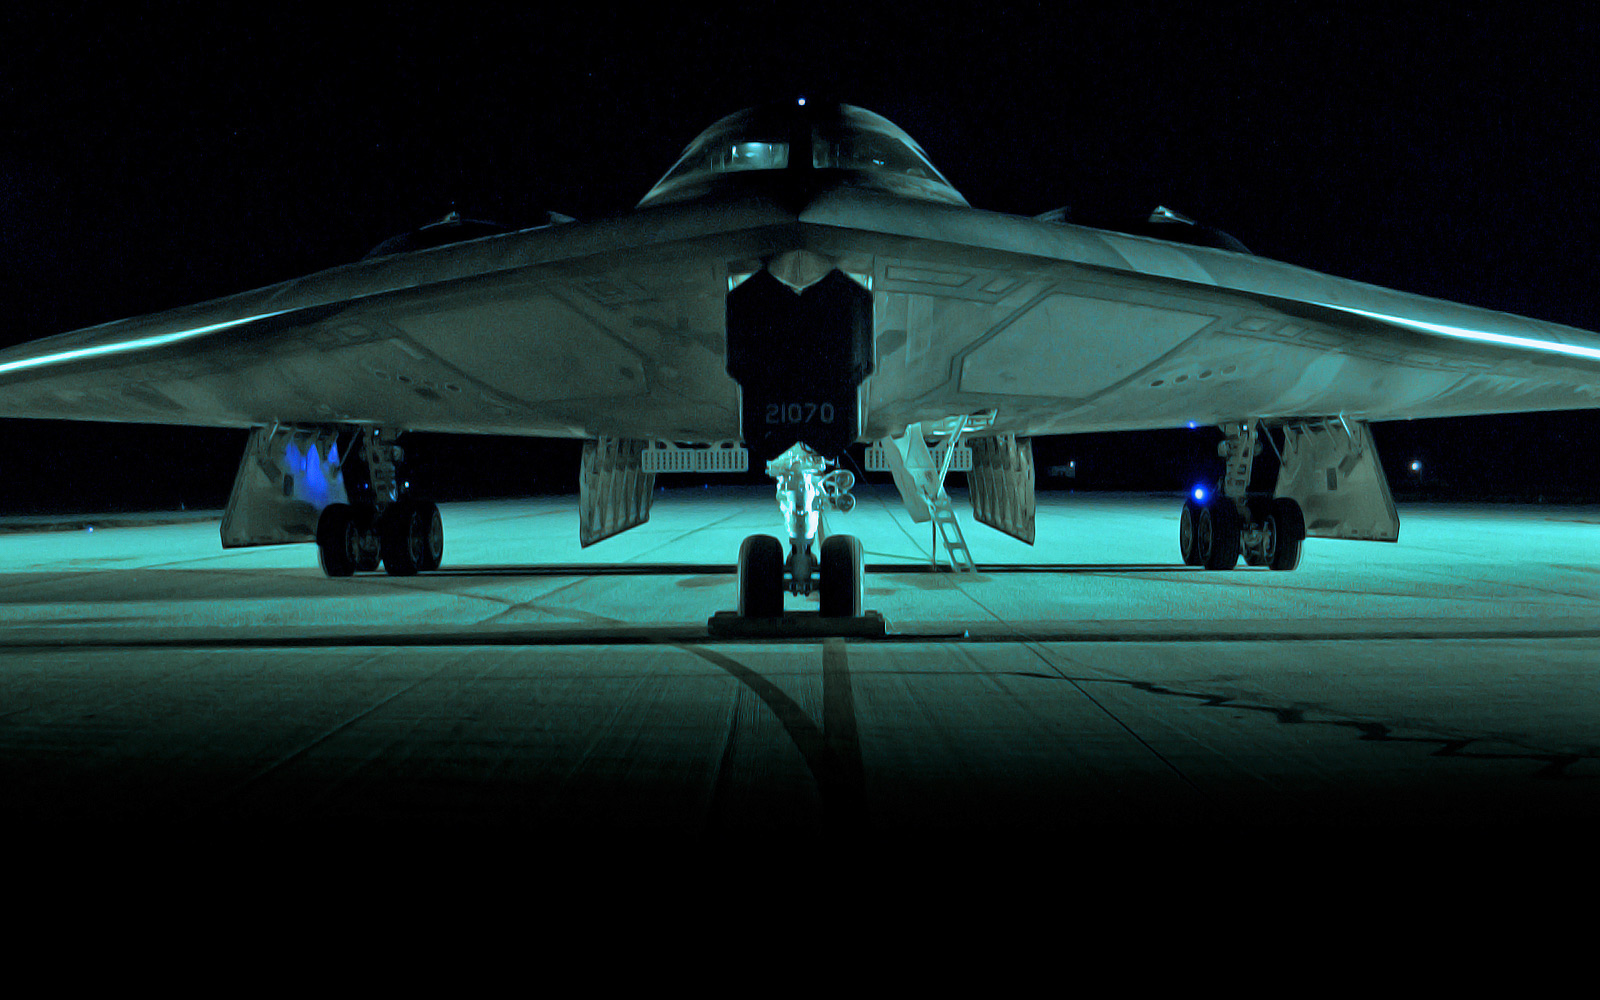 B2 Bomber Wallpaper Stealth bomber wallpaper 1600x1000